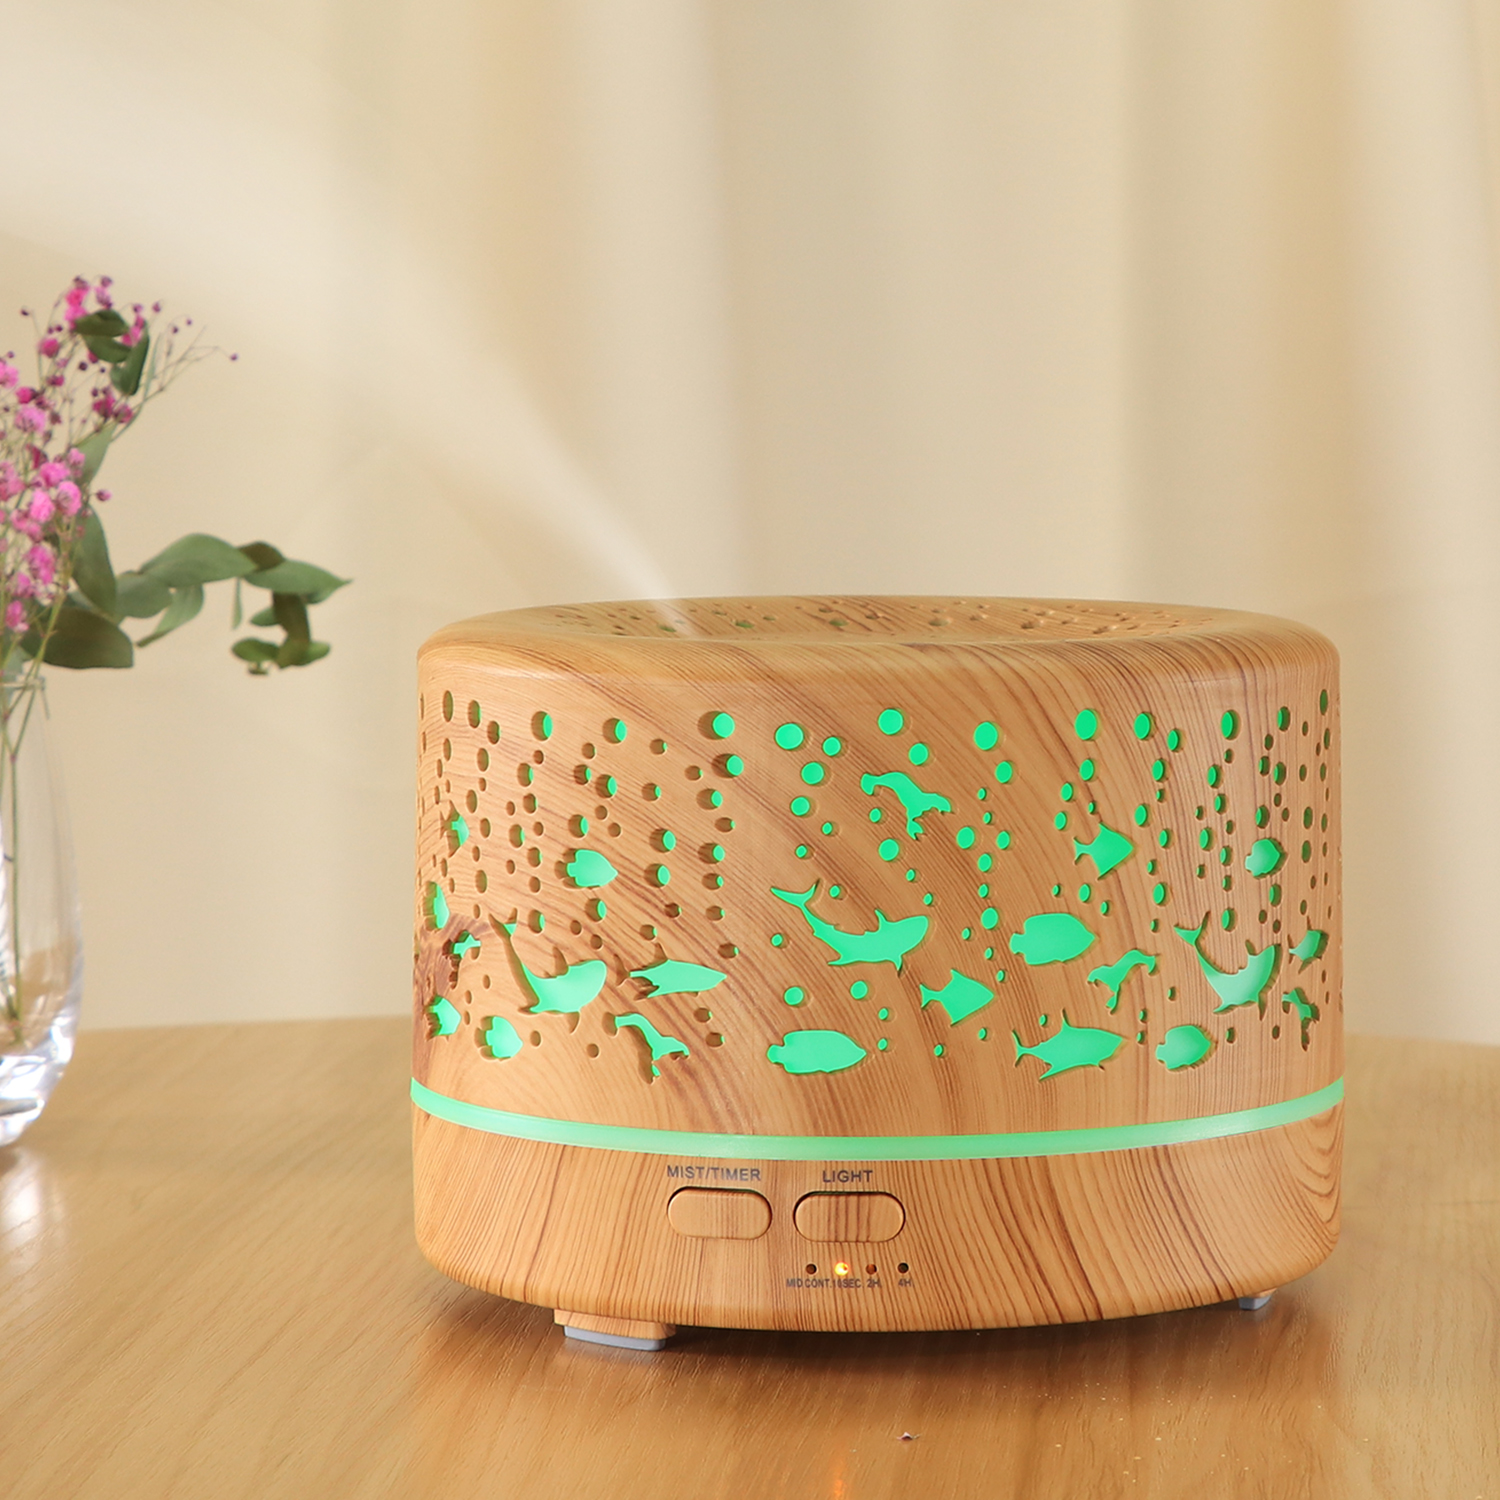 700ml Aroma Diffuser Aromatherapy Wood Grain Essential Oil Diffuser Ultrasonic Cool Mist Humidifier For Office Home